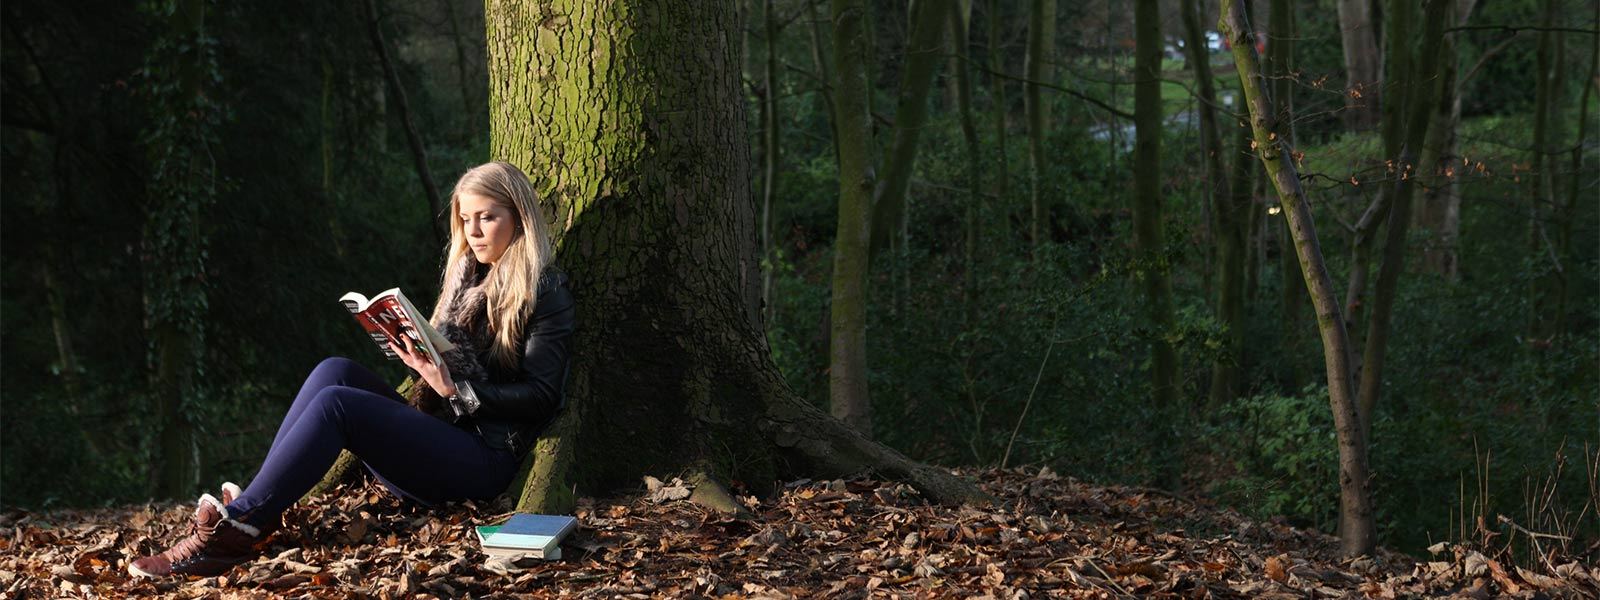 A female undergraduate student sits reading at the base of a tree.